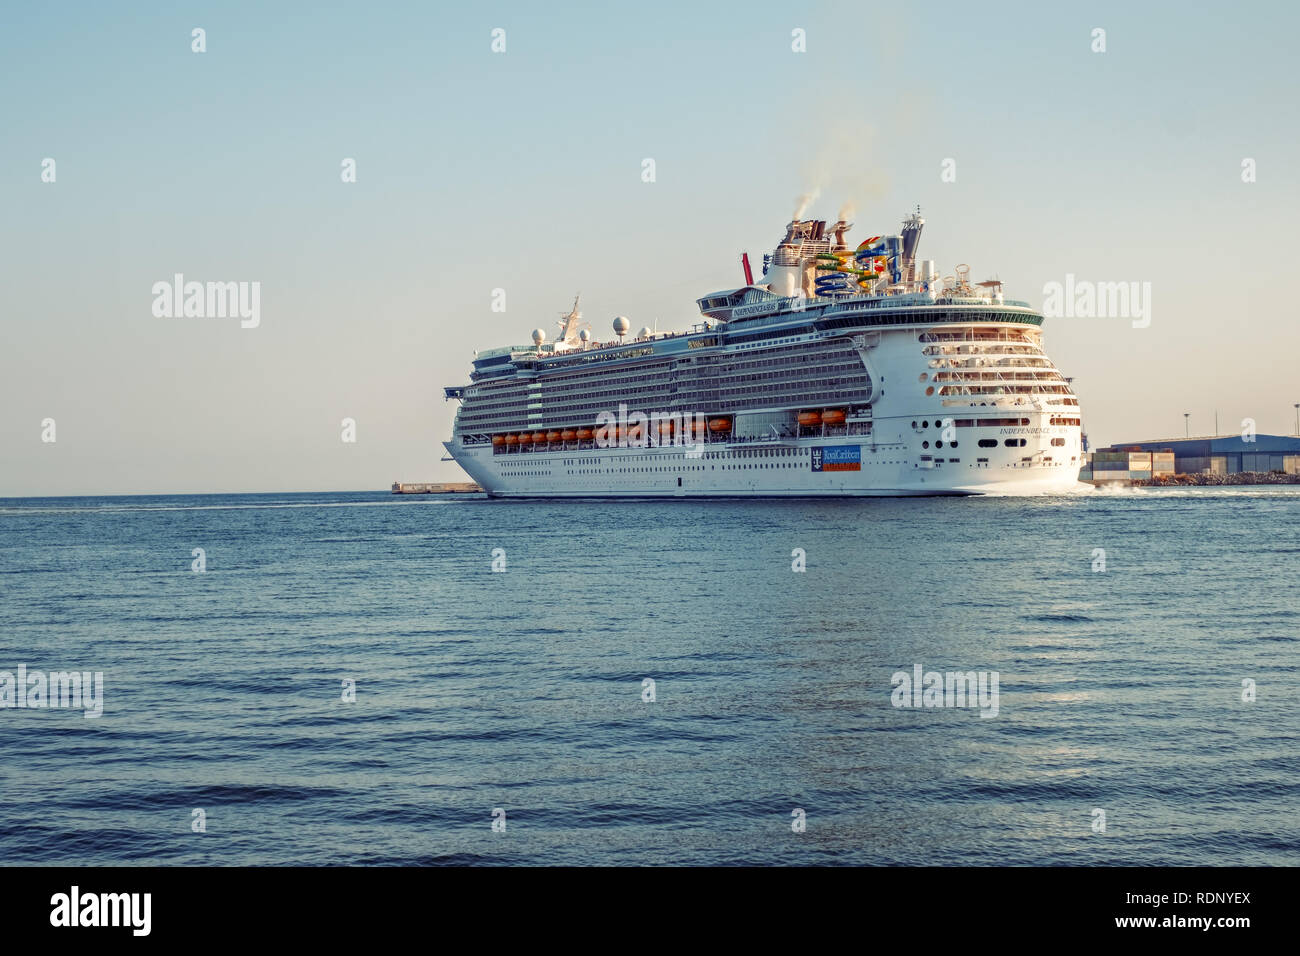 Malaga, Spain - June 26, 2018. Royal Caribbean Independence of the Seas cruise ship leaves the port of Malaga city, Costa del Sol, Malaga Province, An - Stock Image